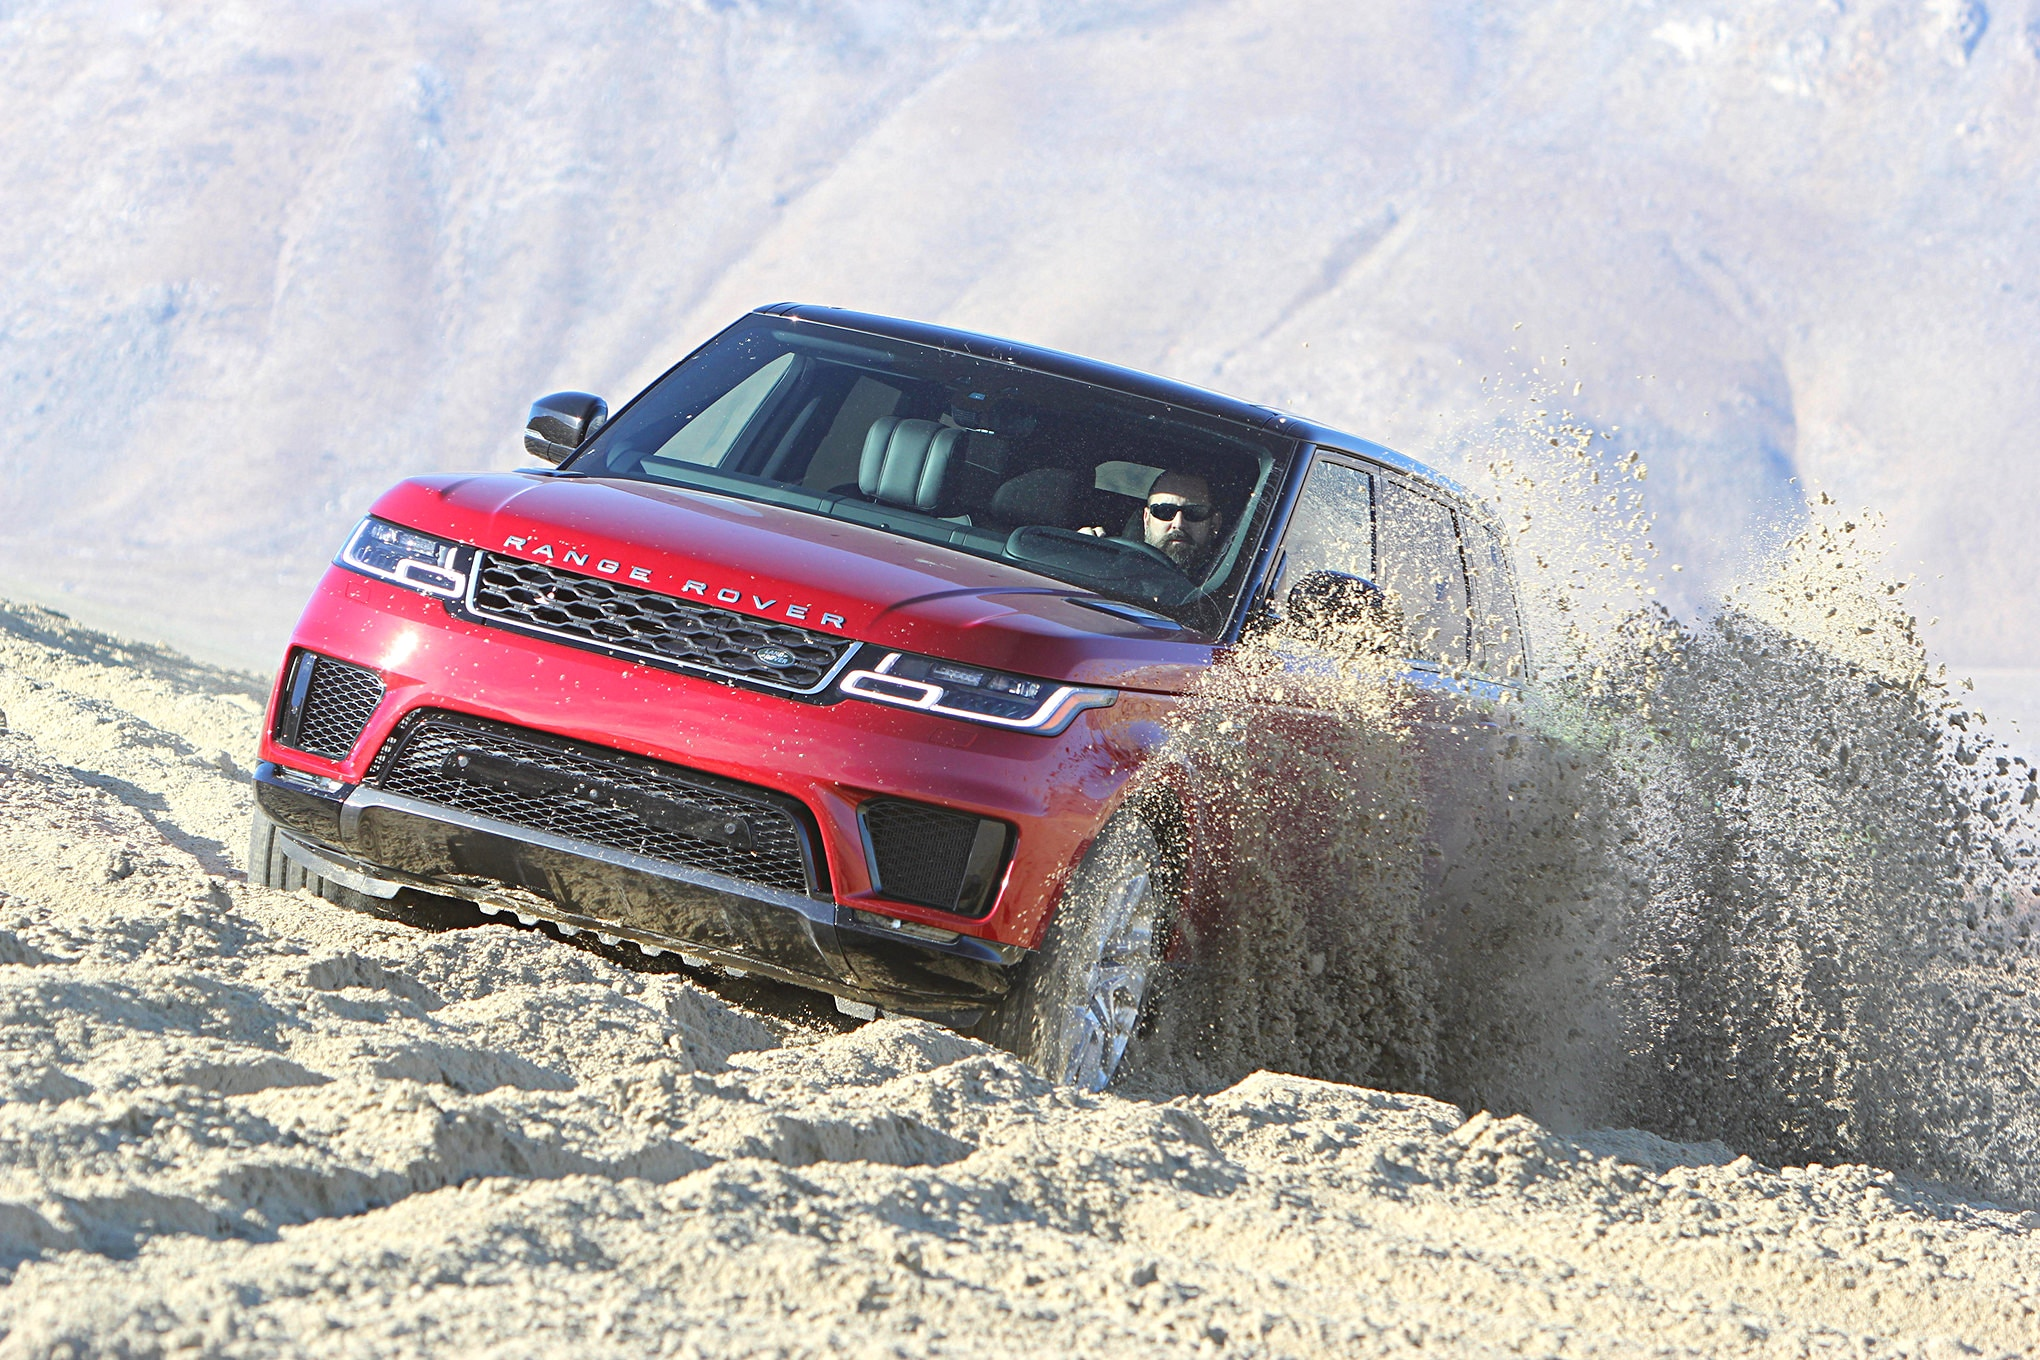 2019 suv of the year range rover sport P400e in sand.JPG